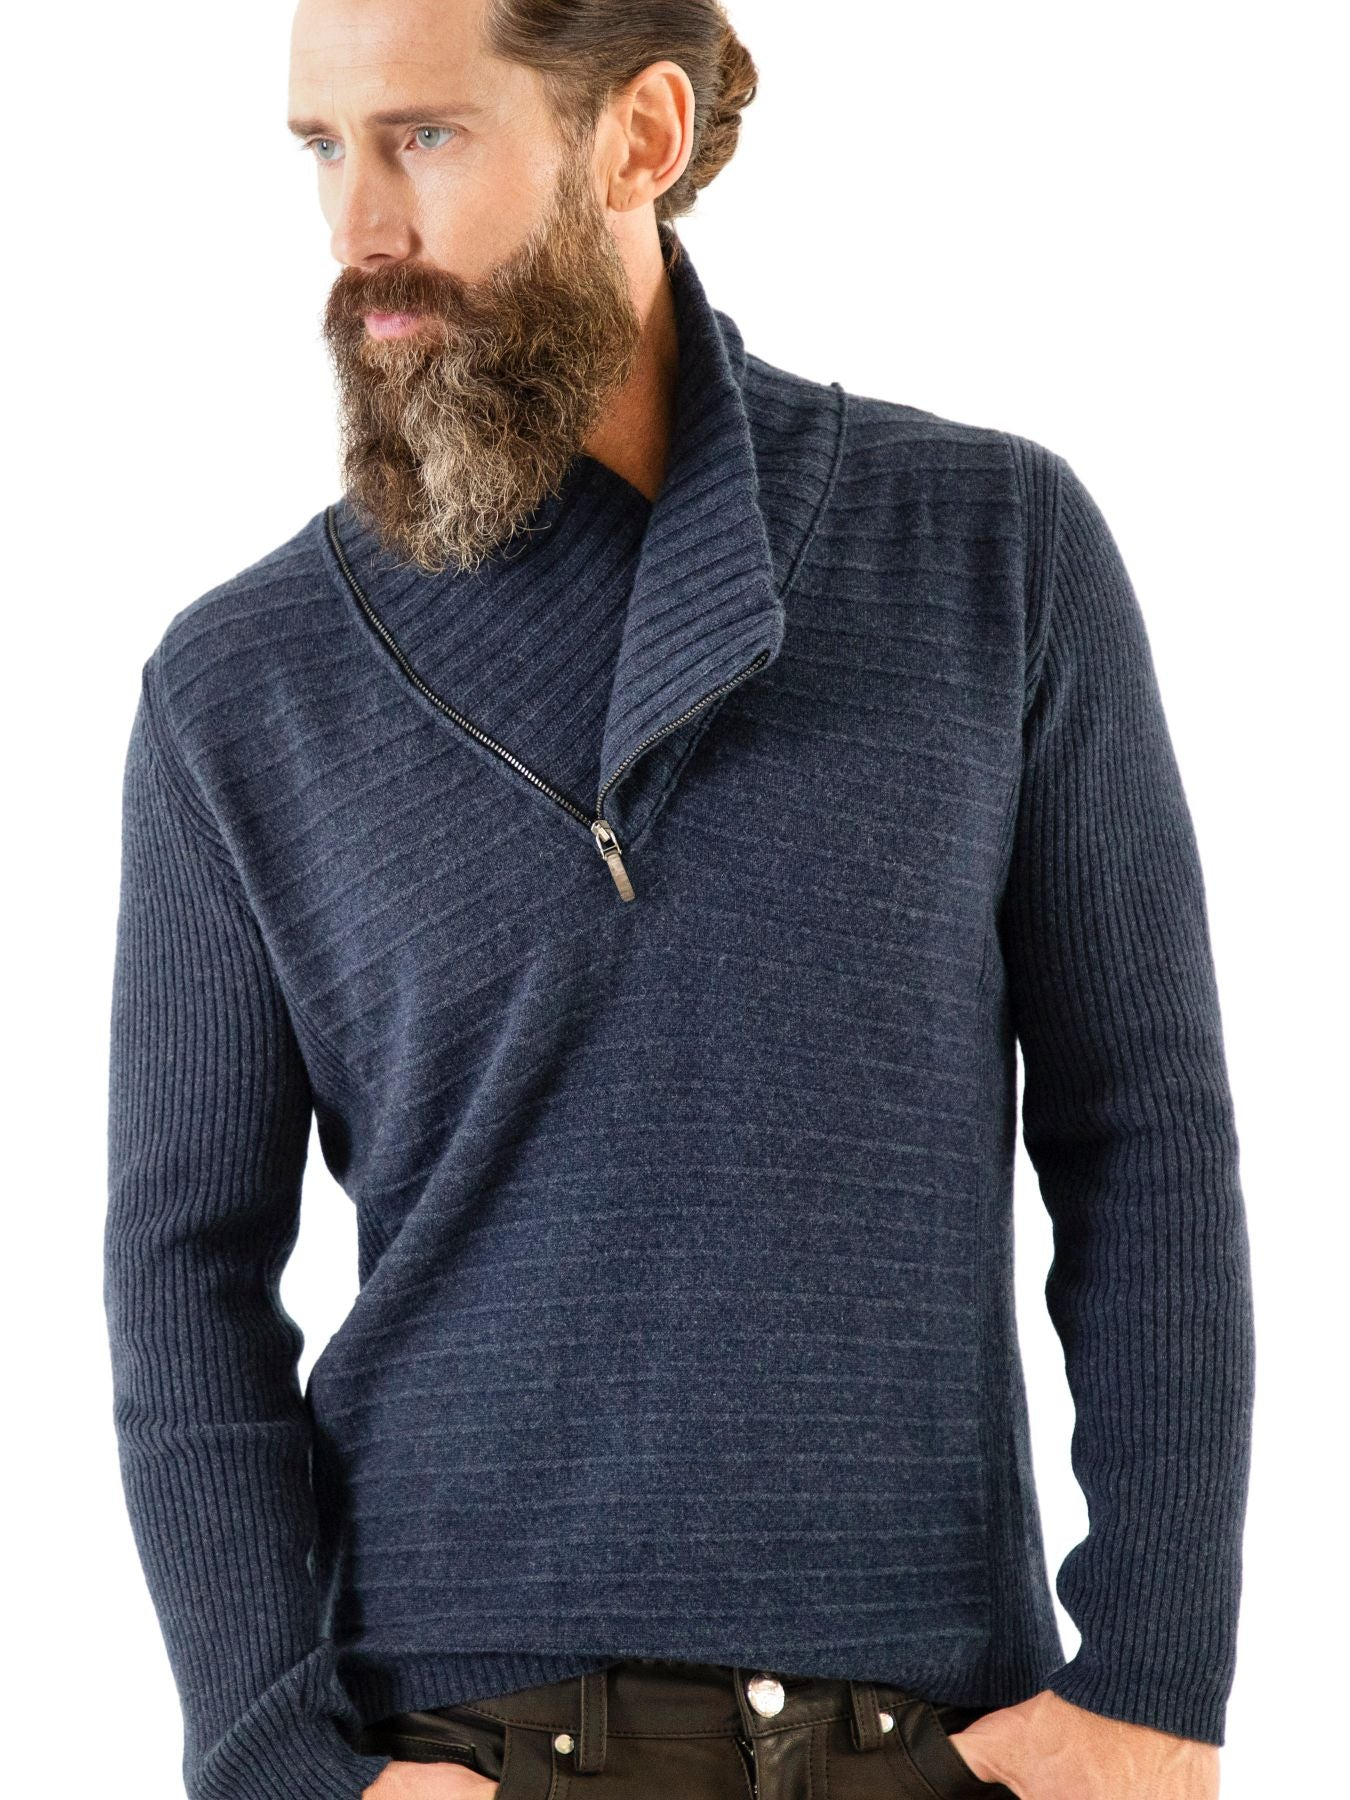 Relaxed front twelve-gauge cashmere 3-pattern sweater